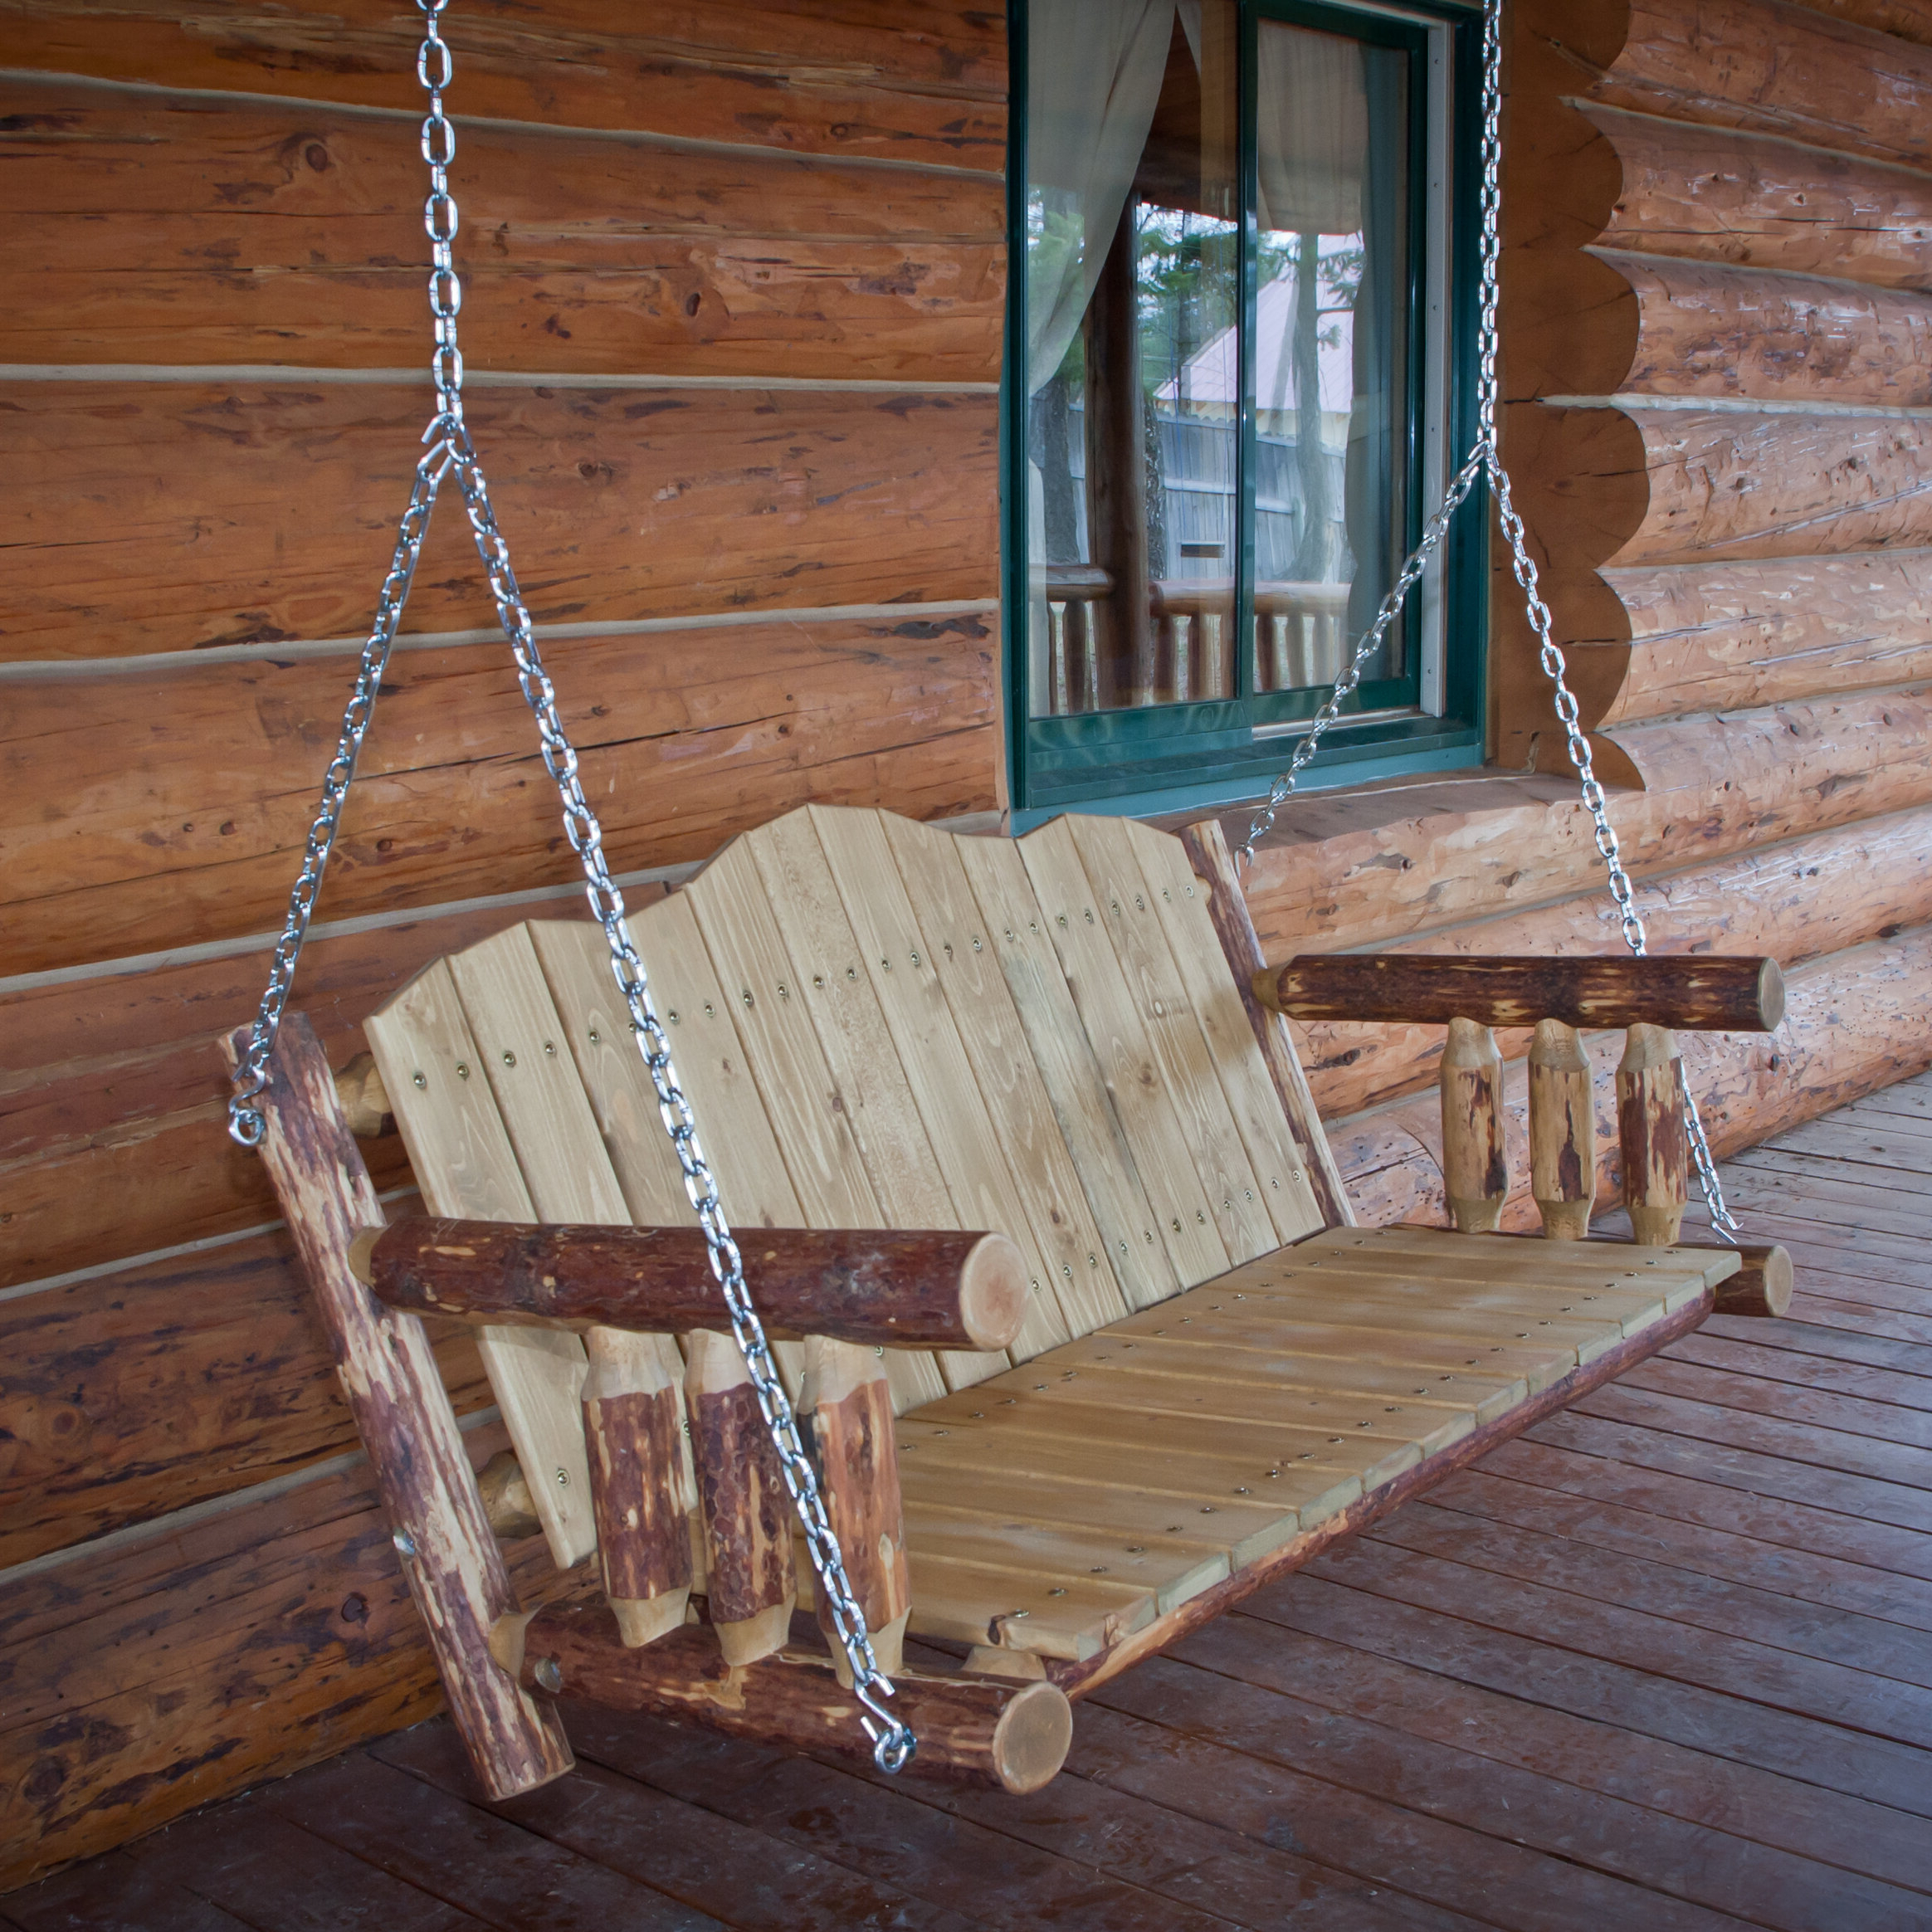 Famous Porch Swings With Chain With Regard To Tustin Porch Swing With Chains (View 18 of 26)